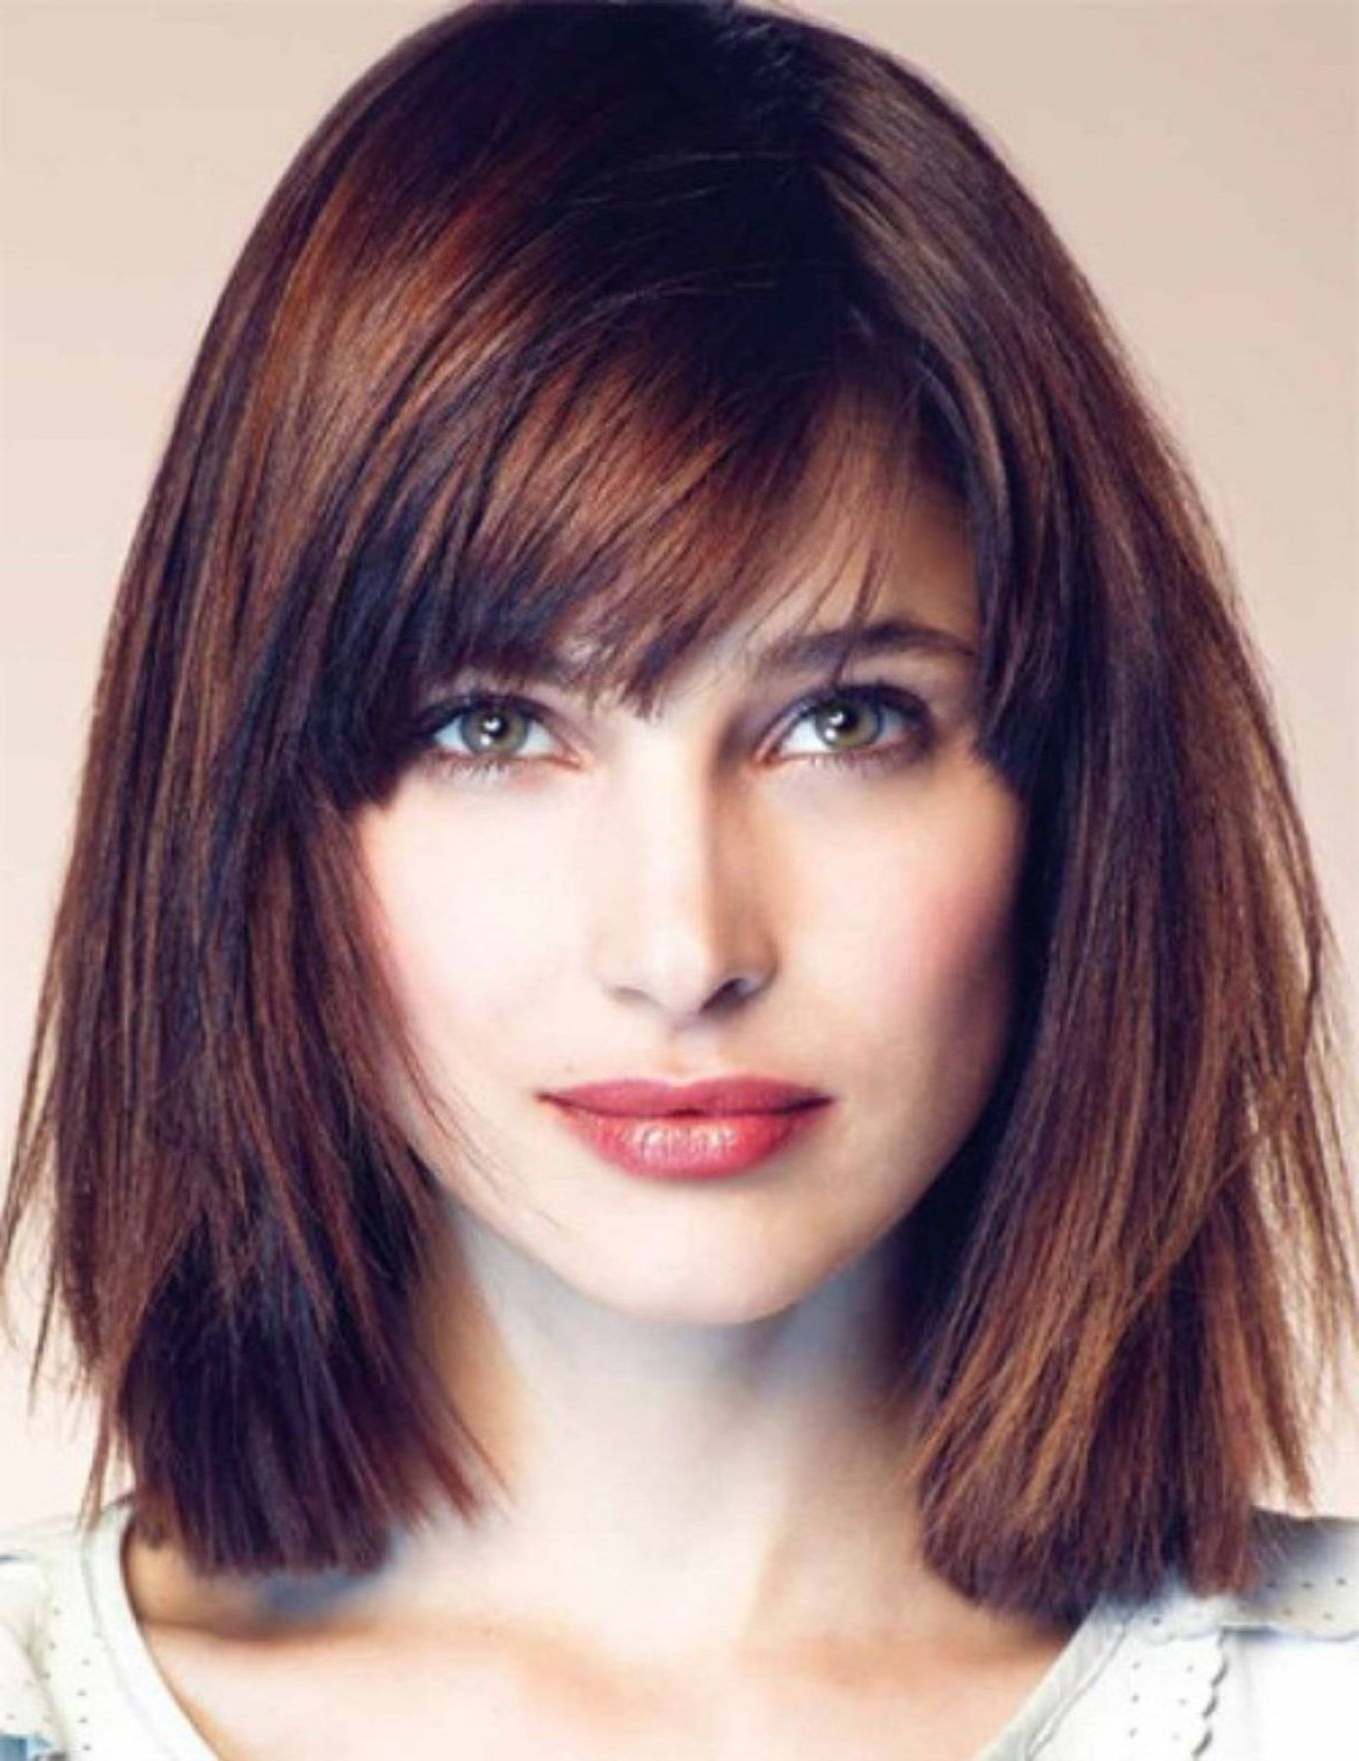 50 Best Hairstyles For Square Faces Rounding The Angles In 2018 Throughout Famous Medium Hairstyles For Square Faces With Bangs (View 8 of 20)